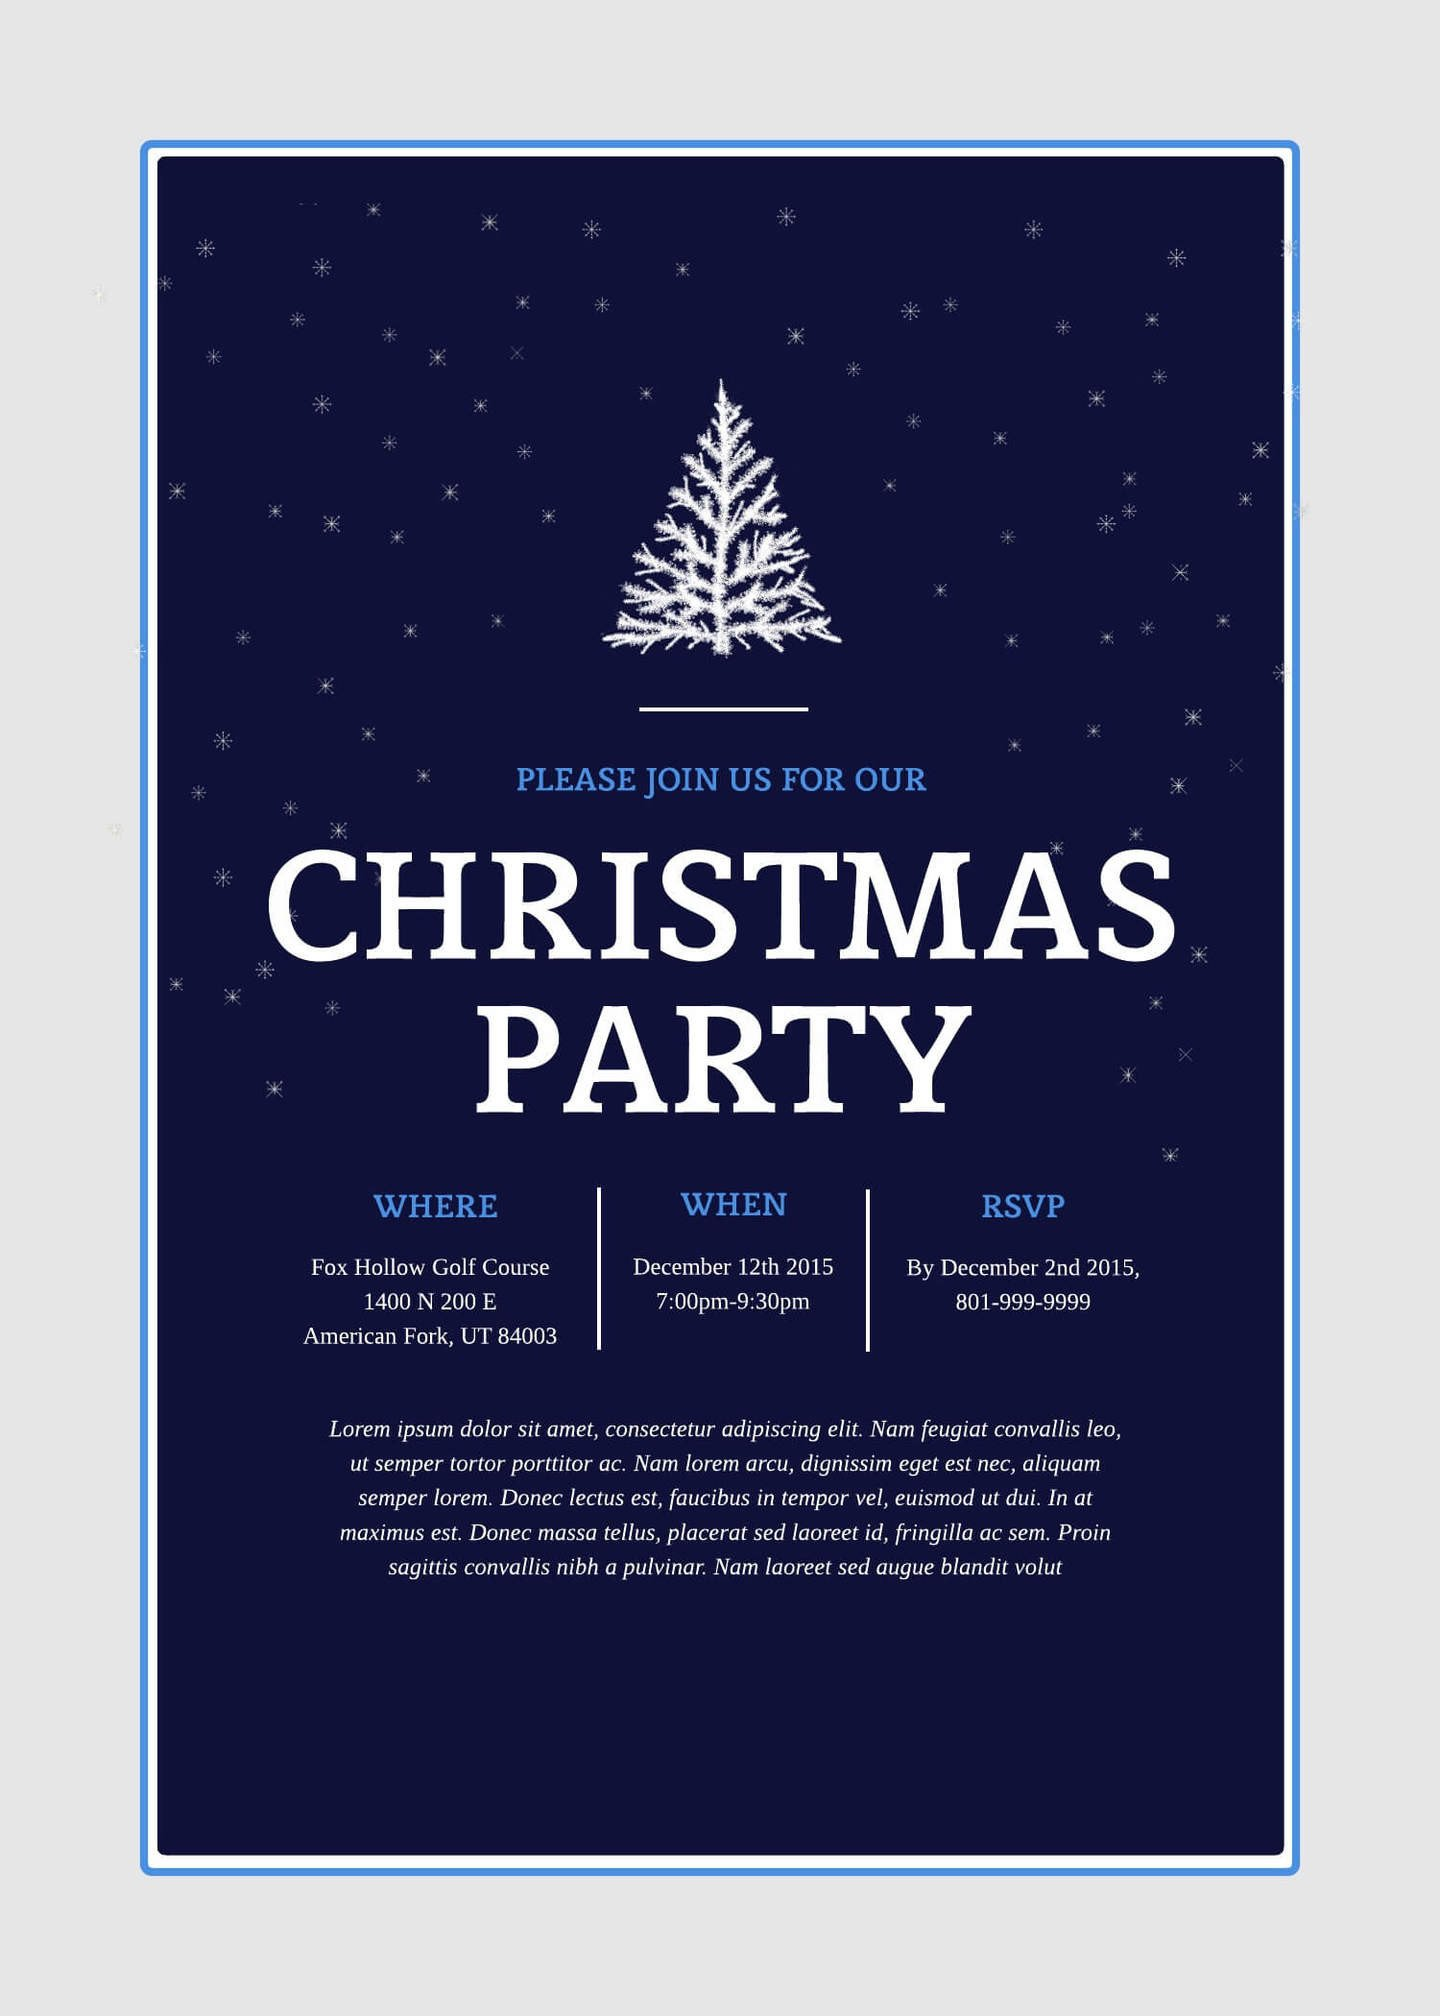 Free Christmas Party Invitation Templates Print and Win Holiday Sweepstakes